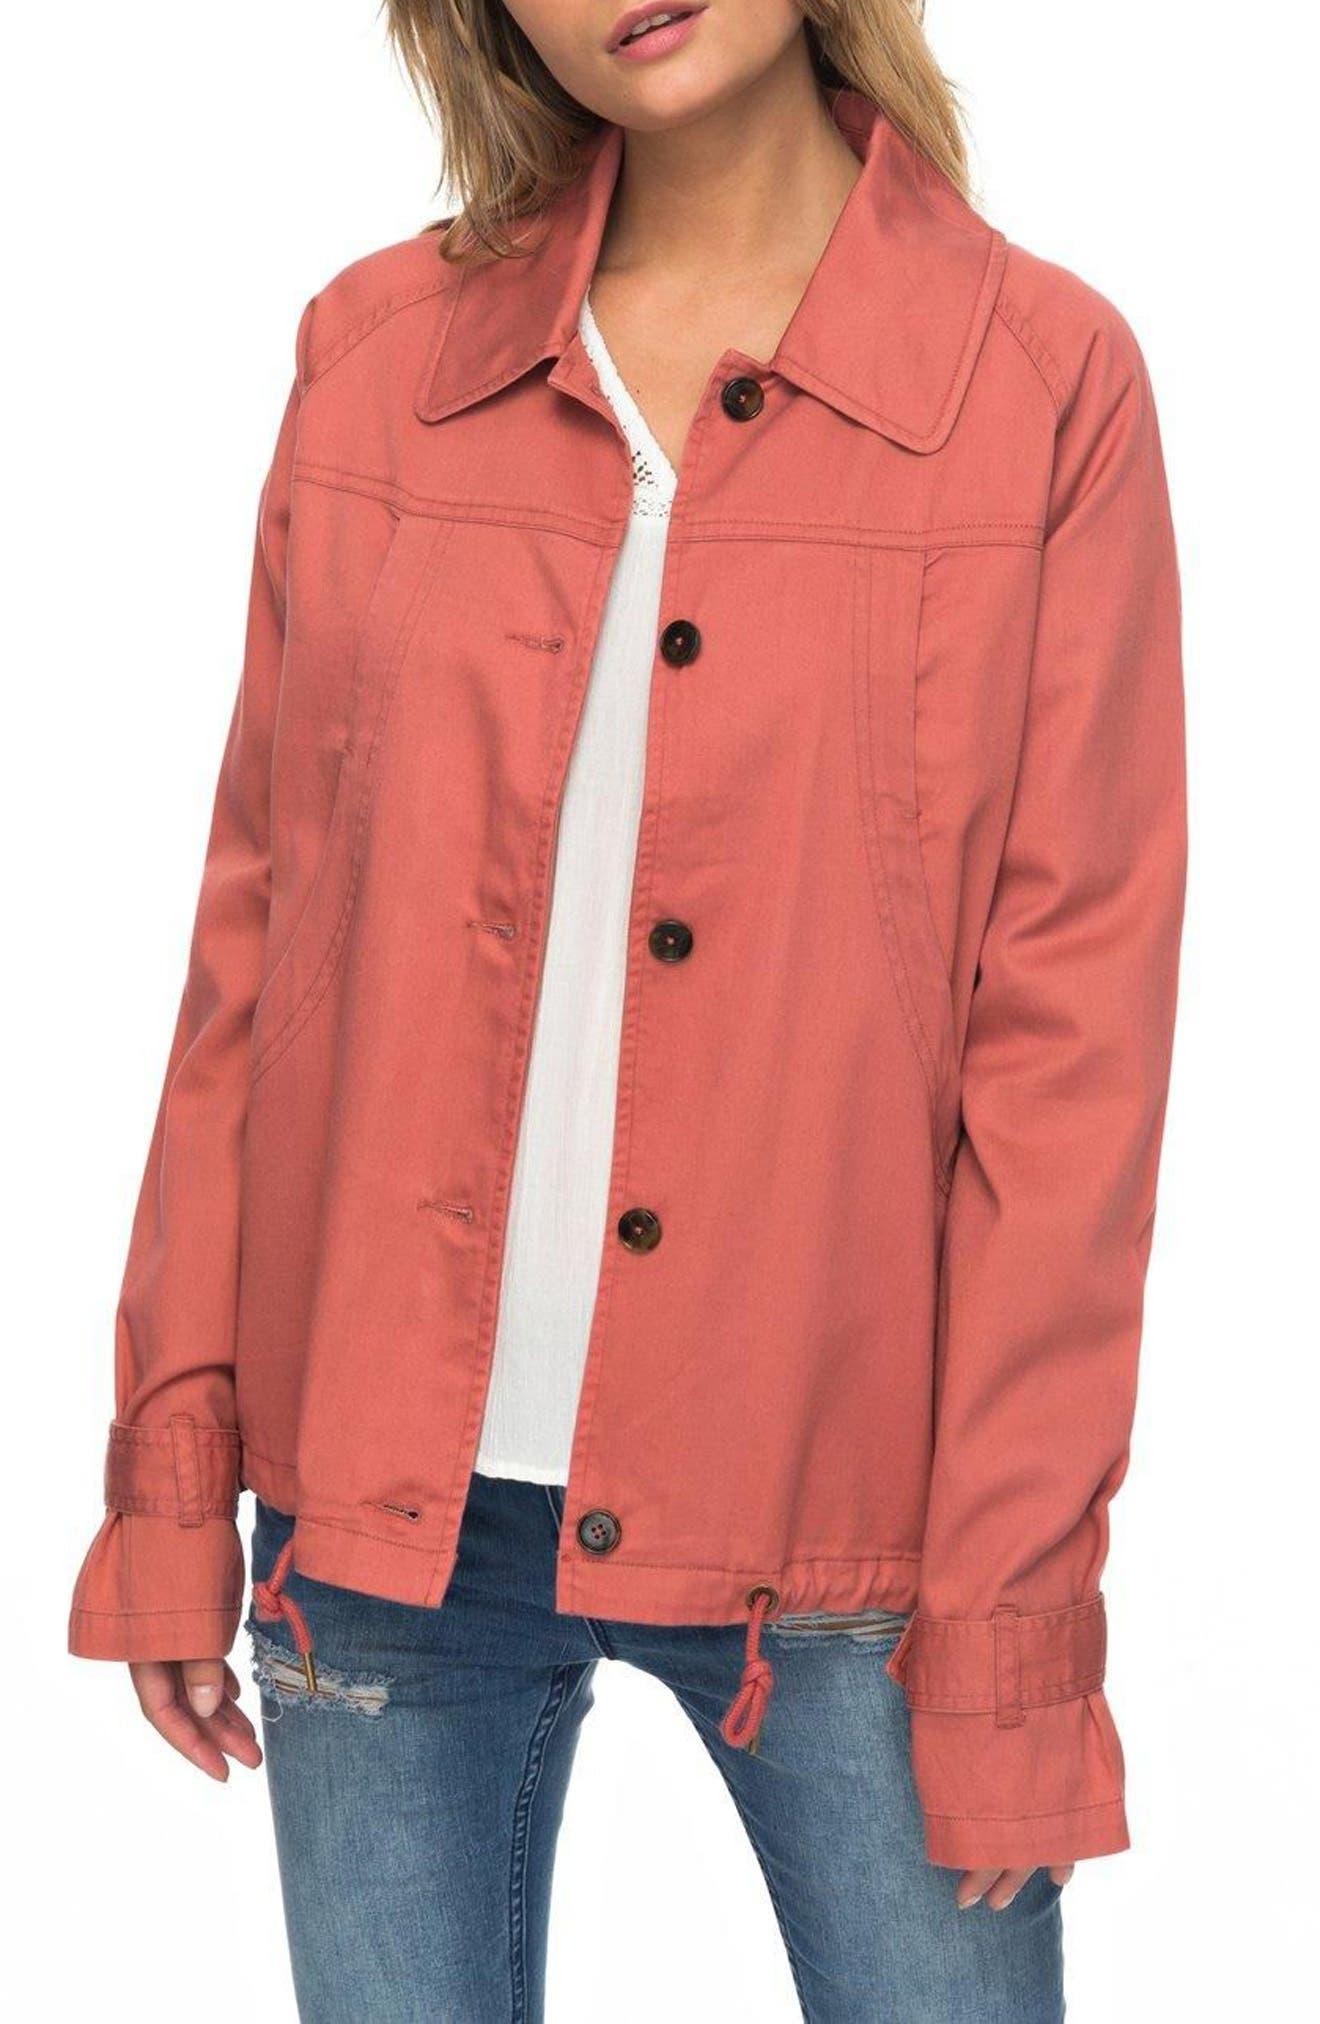 Dream Away Jacket,                             Main thumbnail 1, color,                             Dusty Cedar